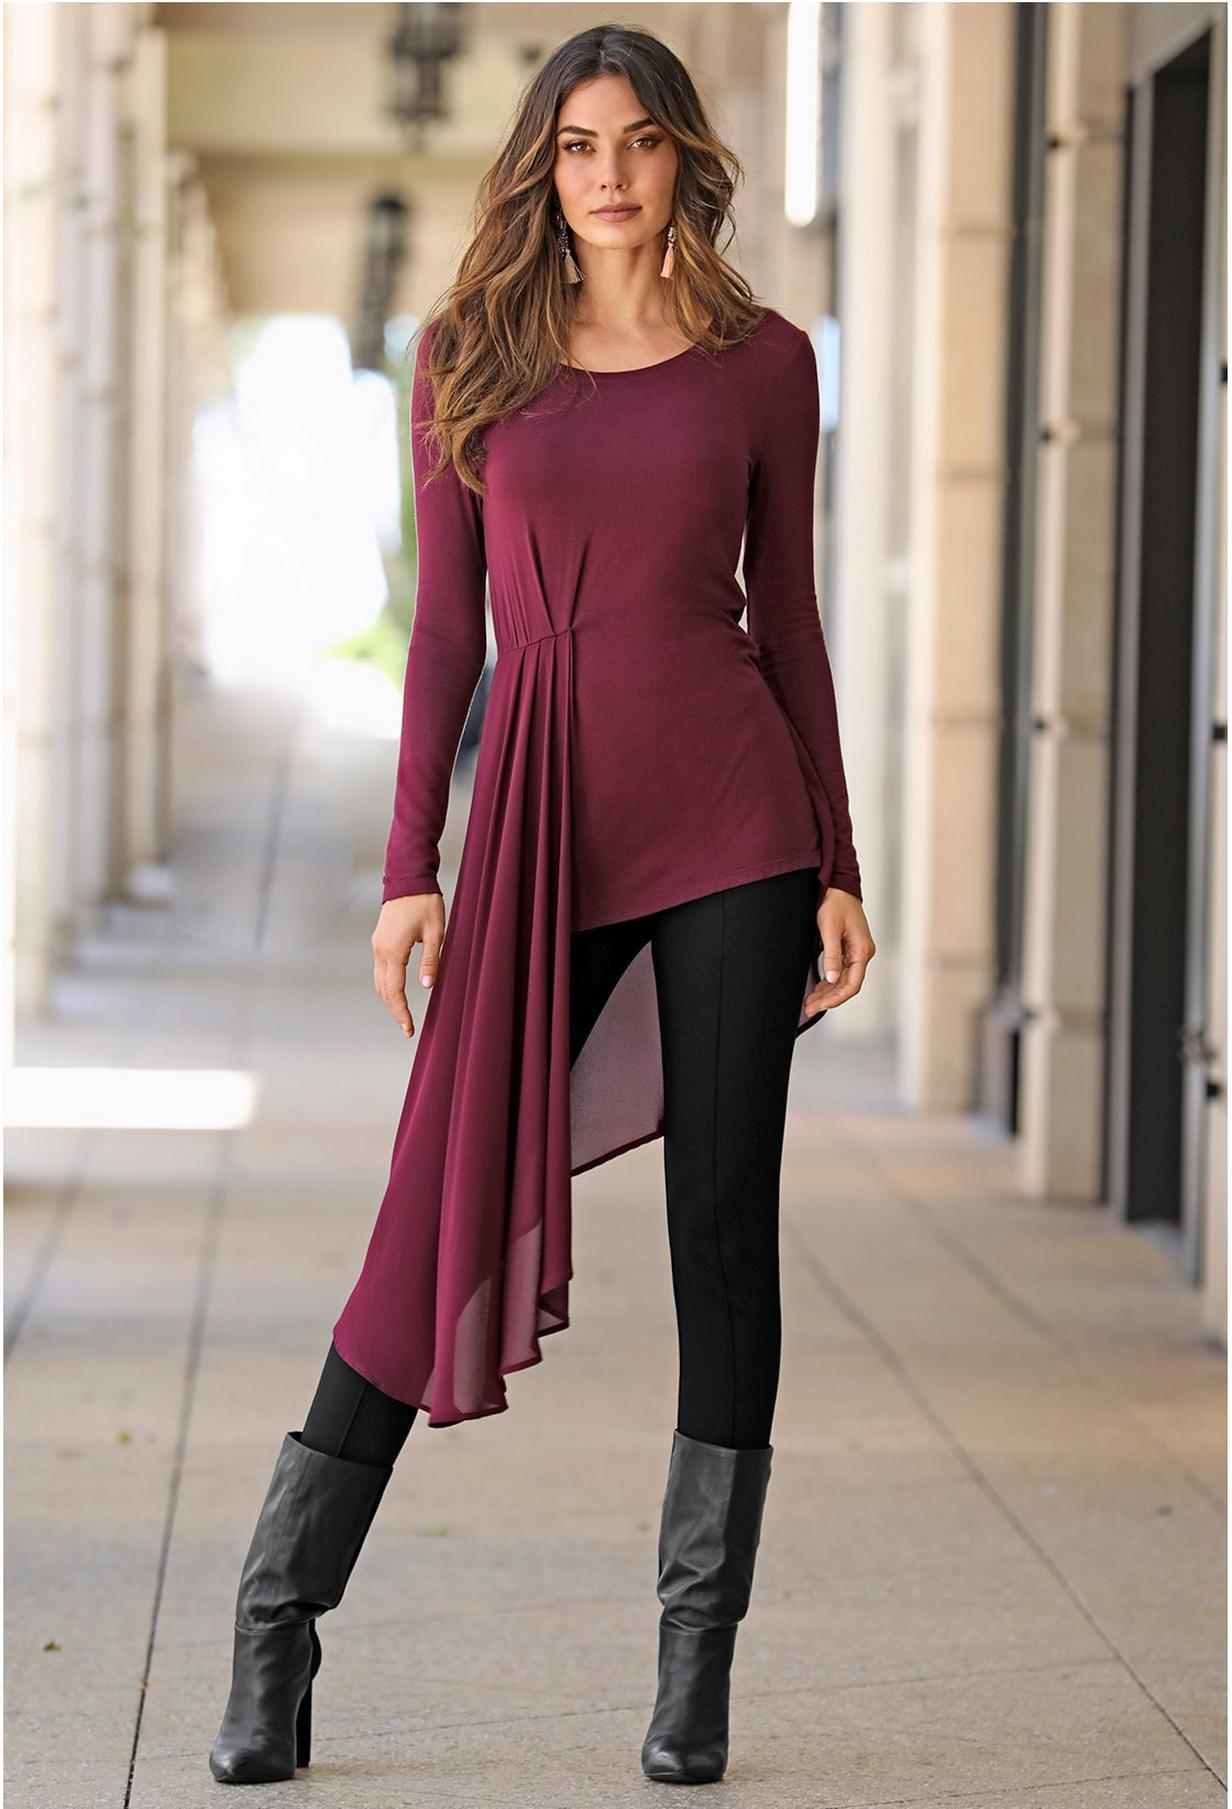 maroon chiffon layover top with leggings and boots